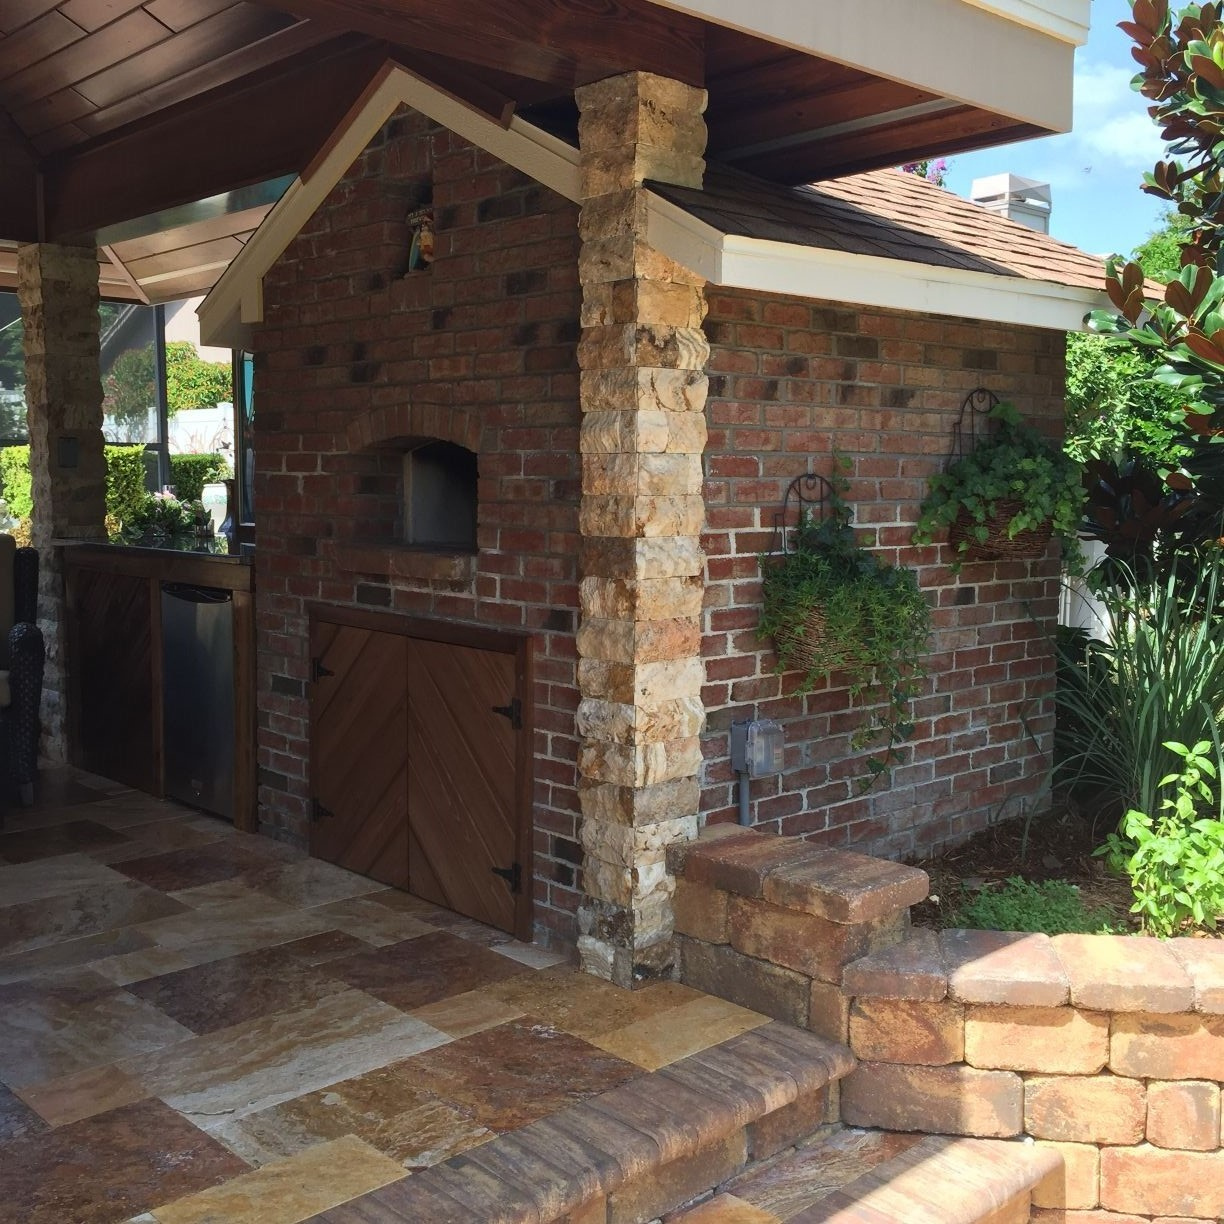 Outdoor Brick Oven Kit - Wood Burning Pizza Ovens | Grills ... on Outdoor Patio With Pizza Oven  id=50379